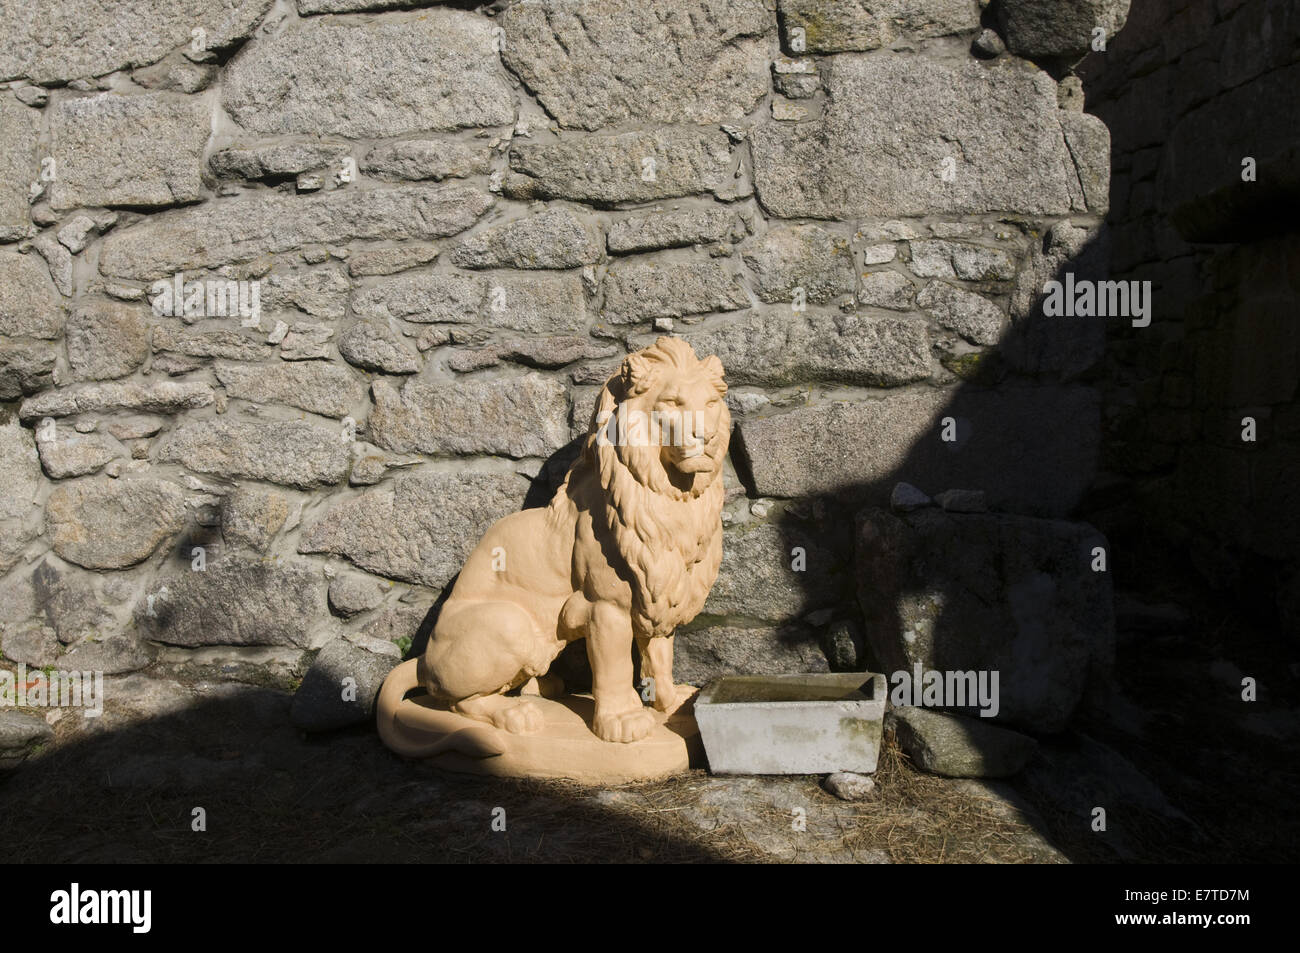 clay lion and a stone wall in a rural village in northern Portugal - Stock Image